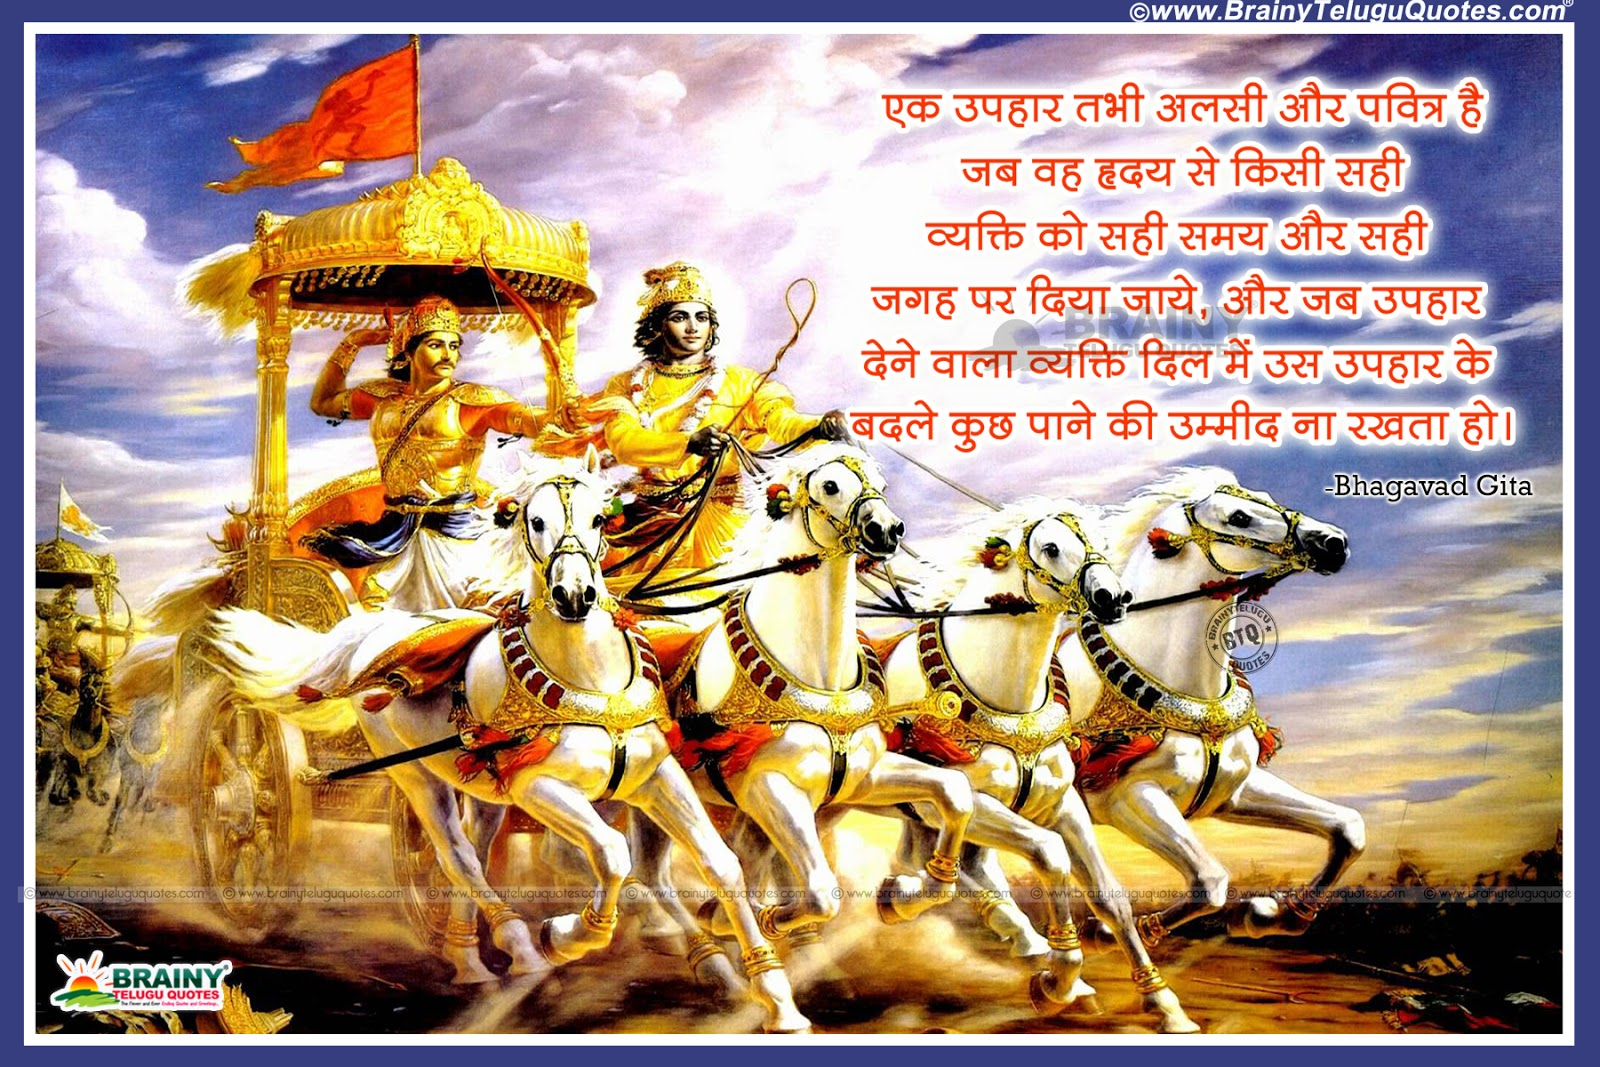 Shrimad mad bhagavad geeta in hindi mp3 free download racinglost.